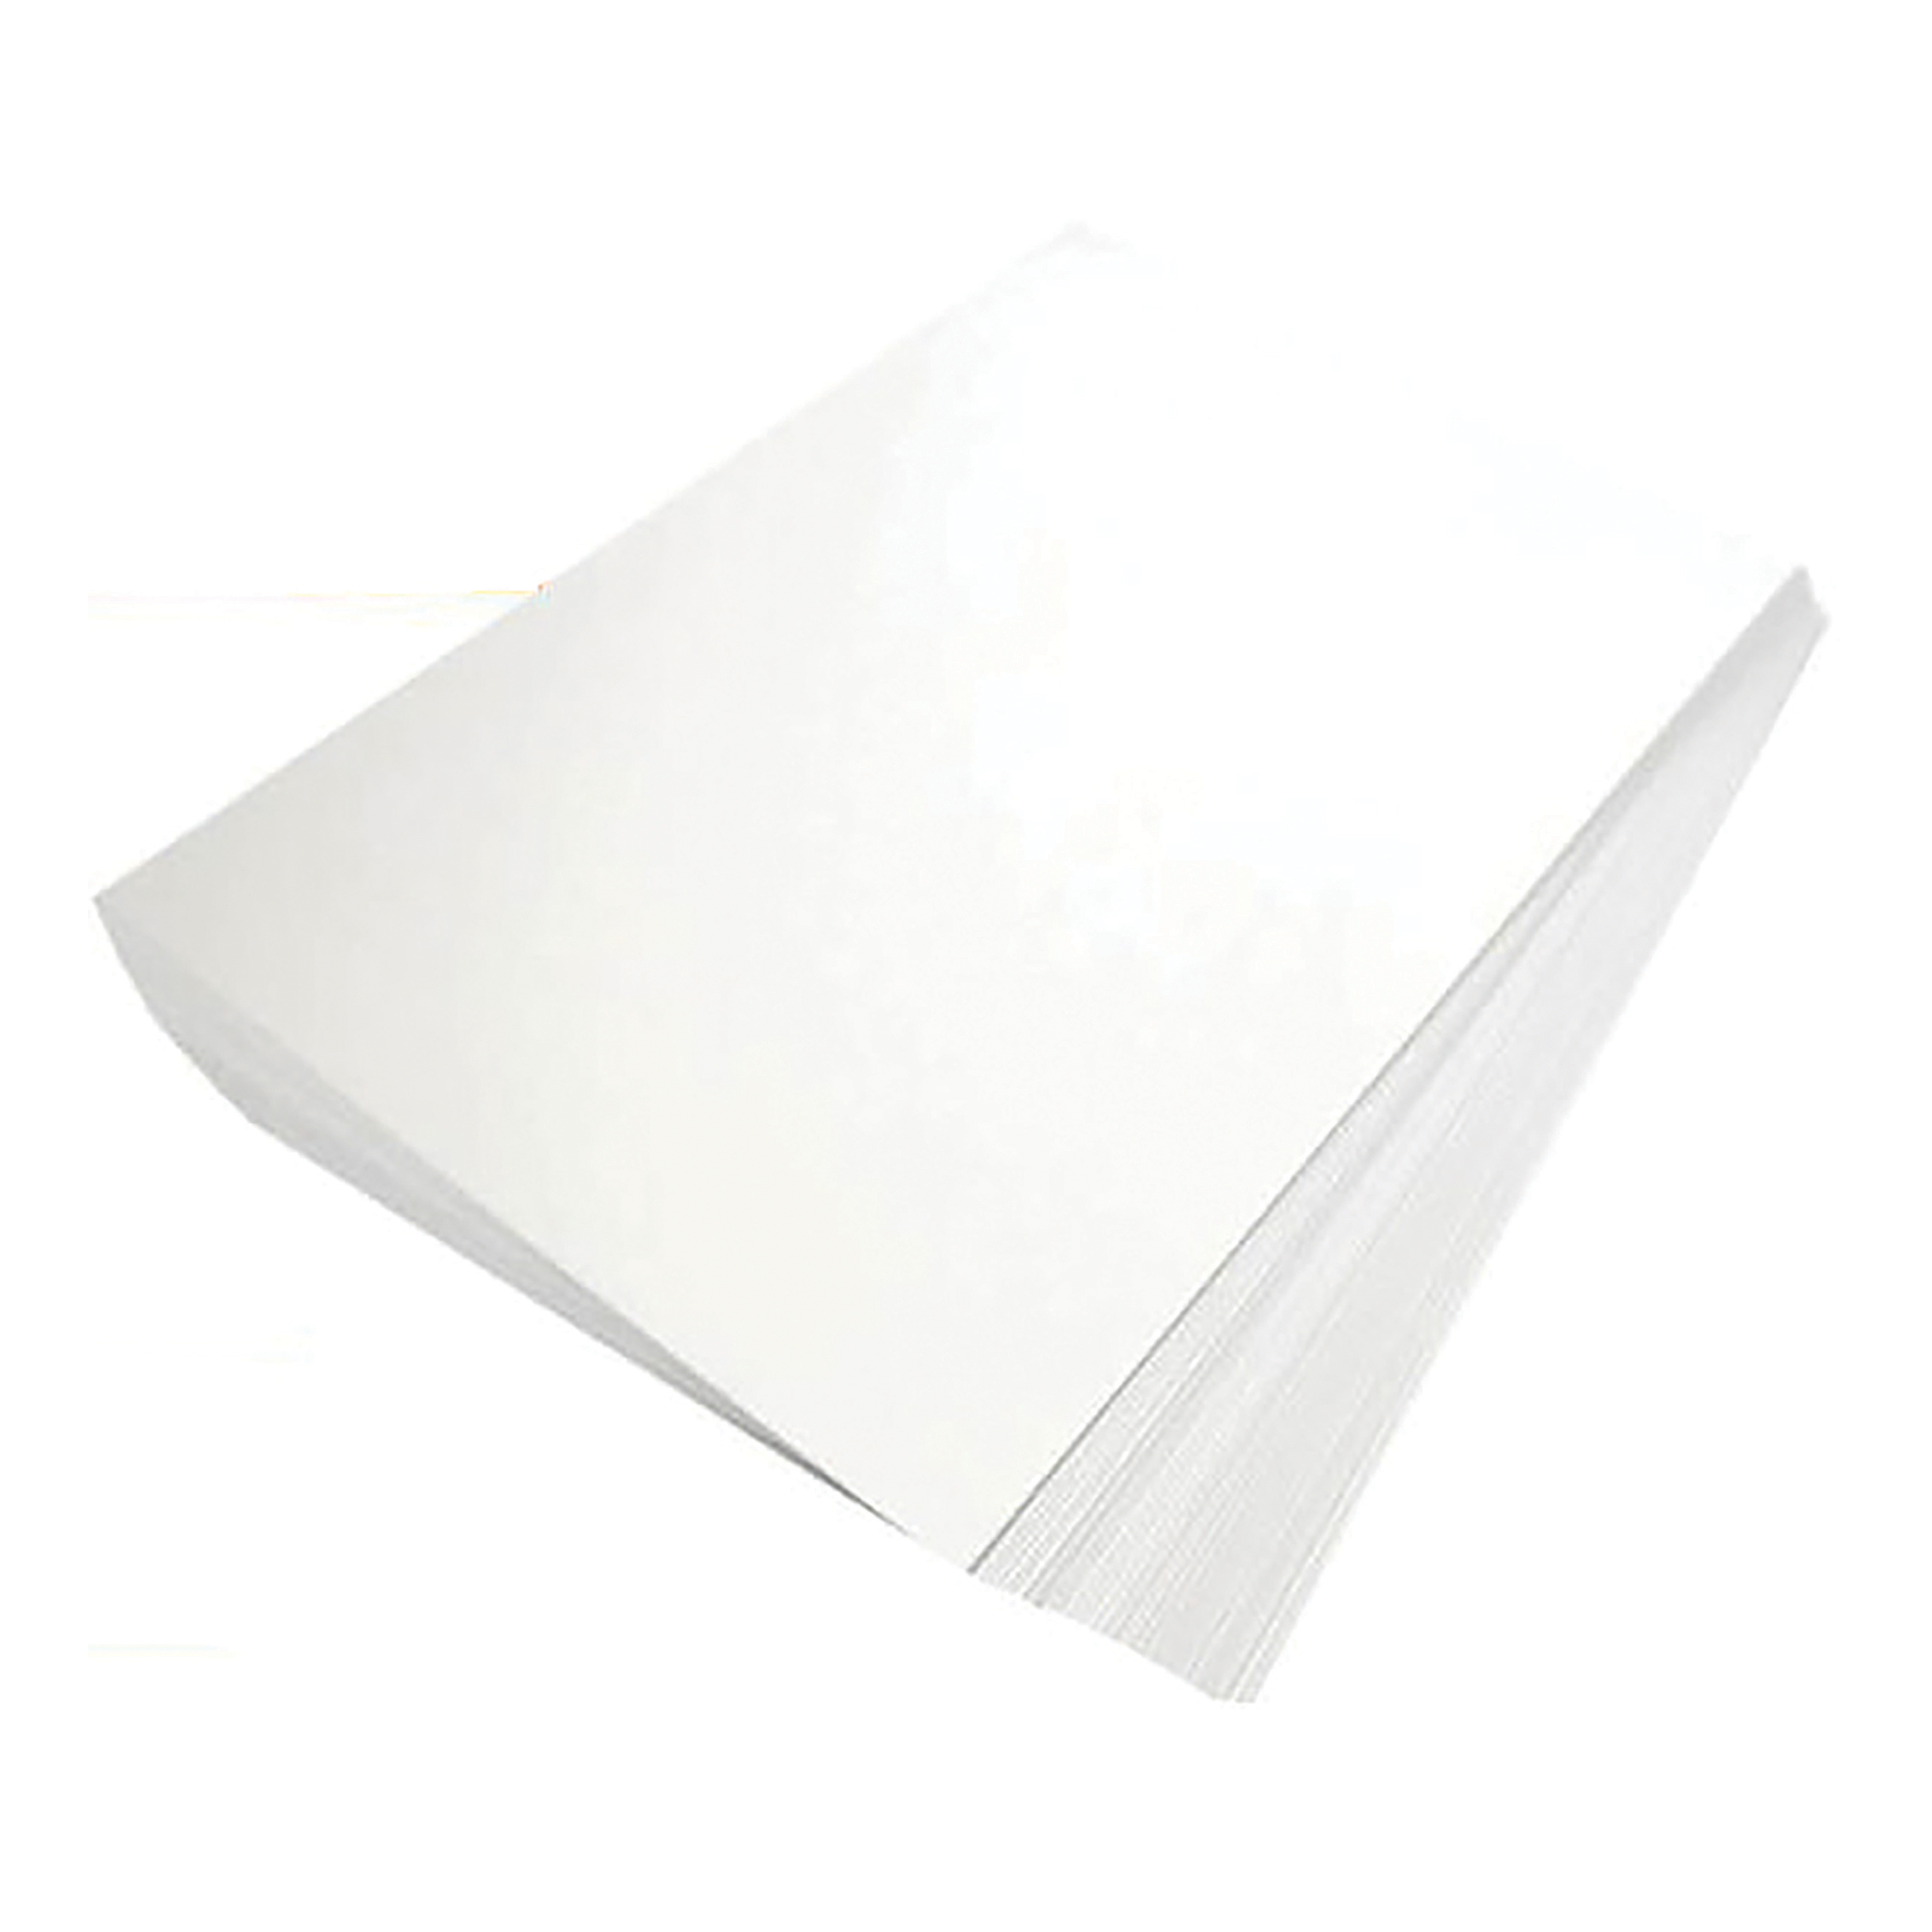 A4 5 Star Elite Premium Business Paper Wove Finish Ream-Wrapped 100gsm A4 Vellum 500 Sheets